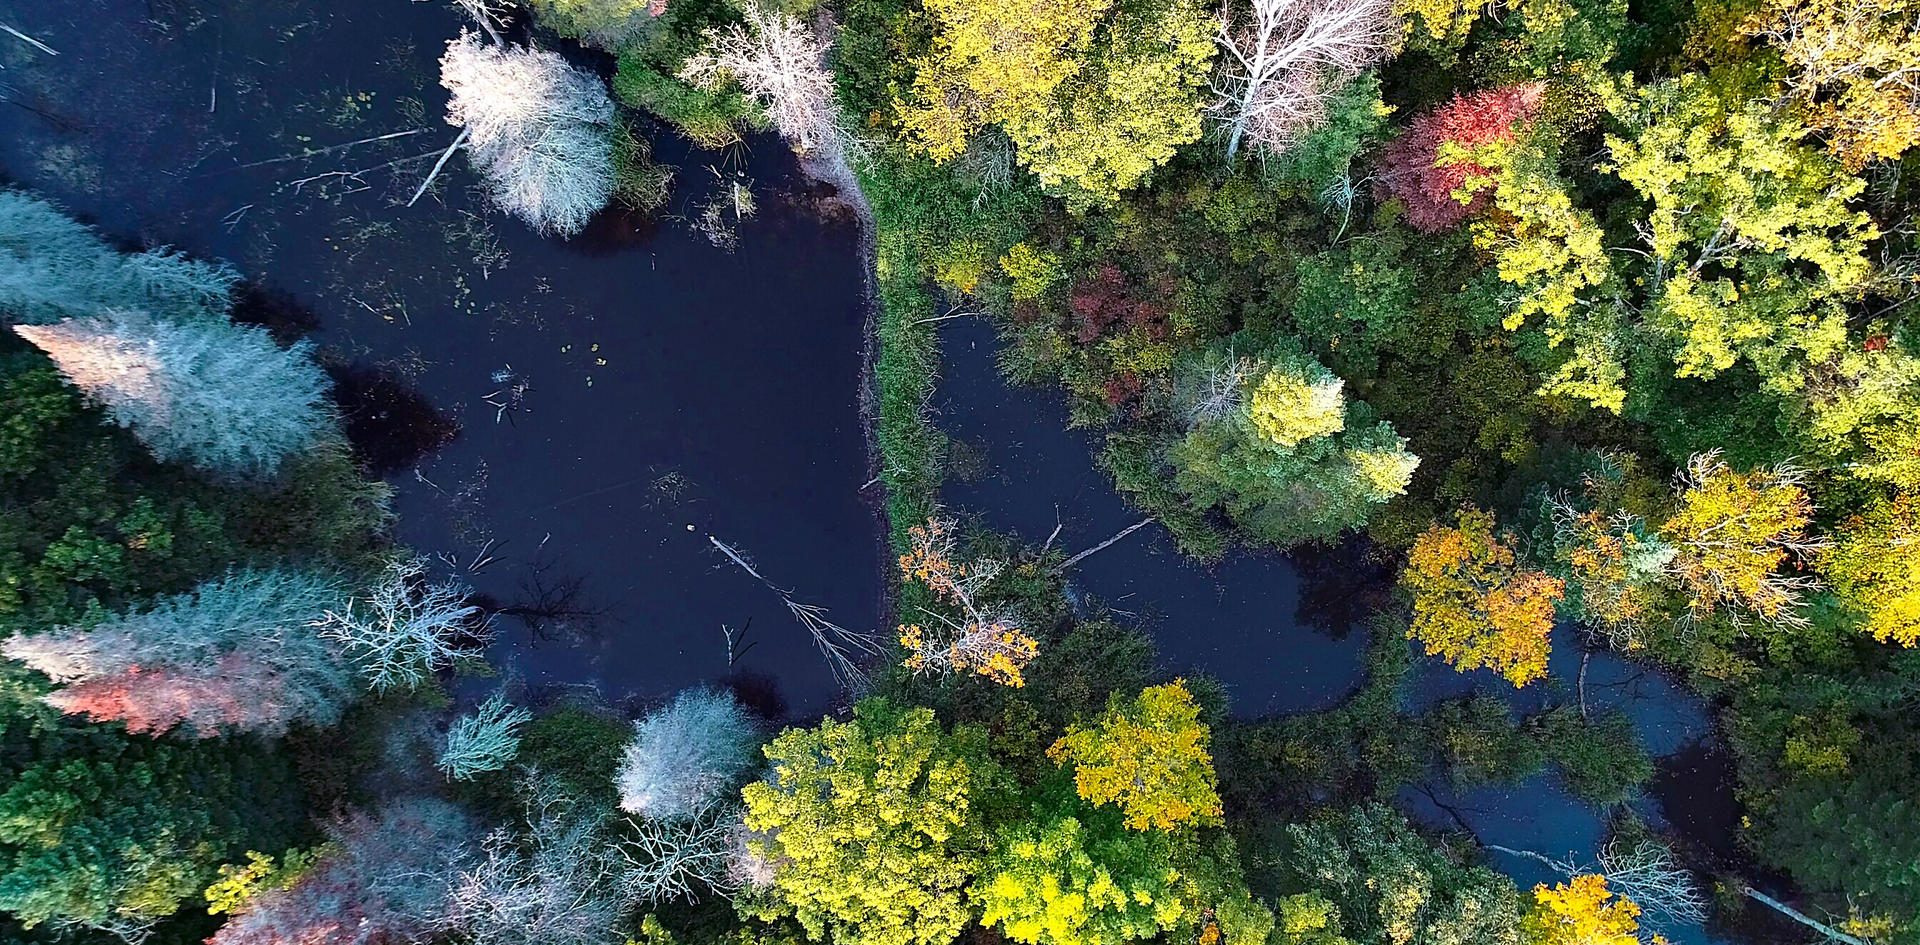 Forest wetland and beaver dam